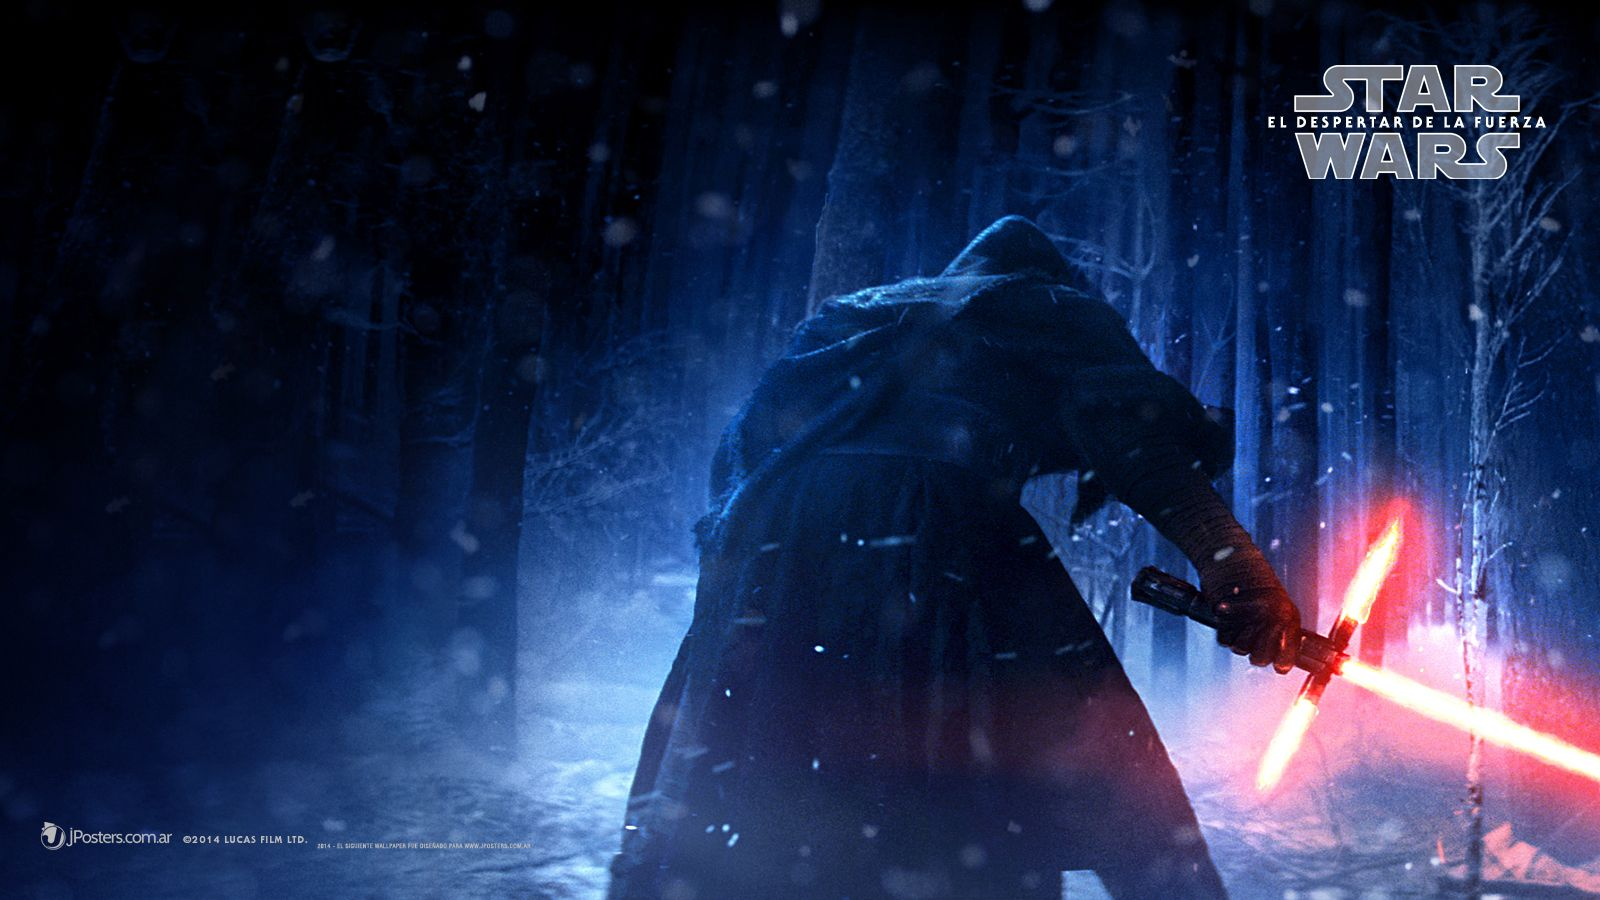 Star Wars 7 Wallpapers Top Free Star Wars 7 Backgrounds Wallpaperaccess